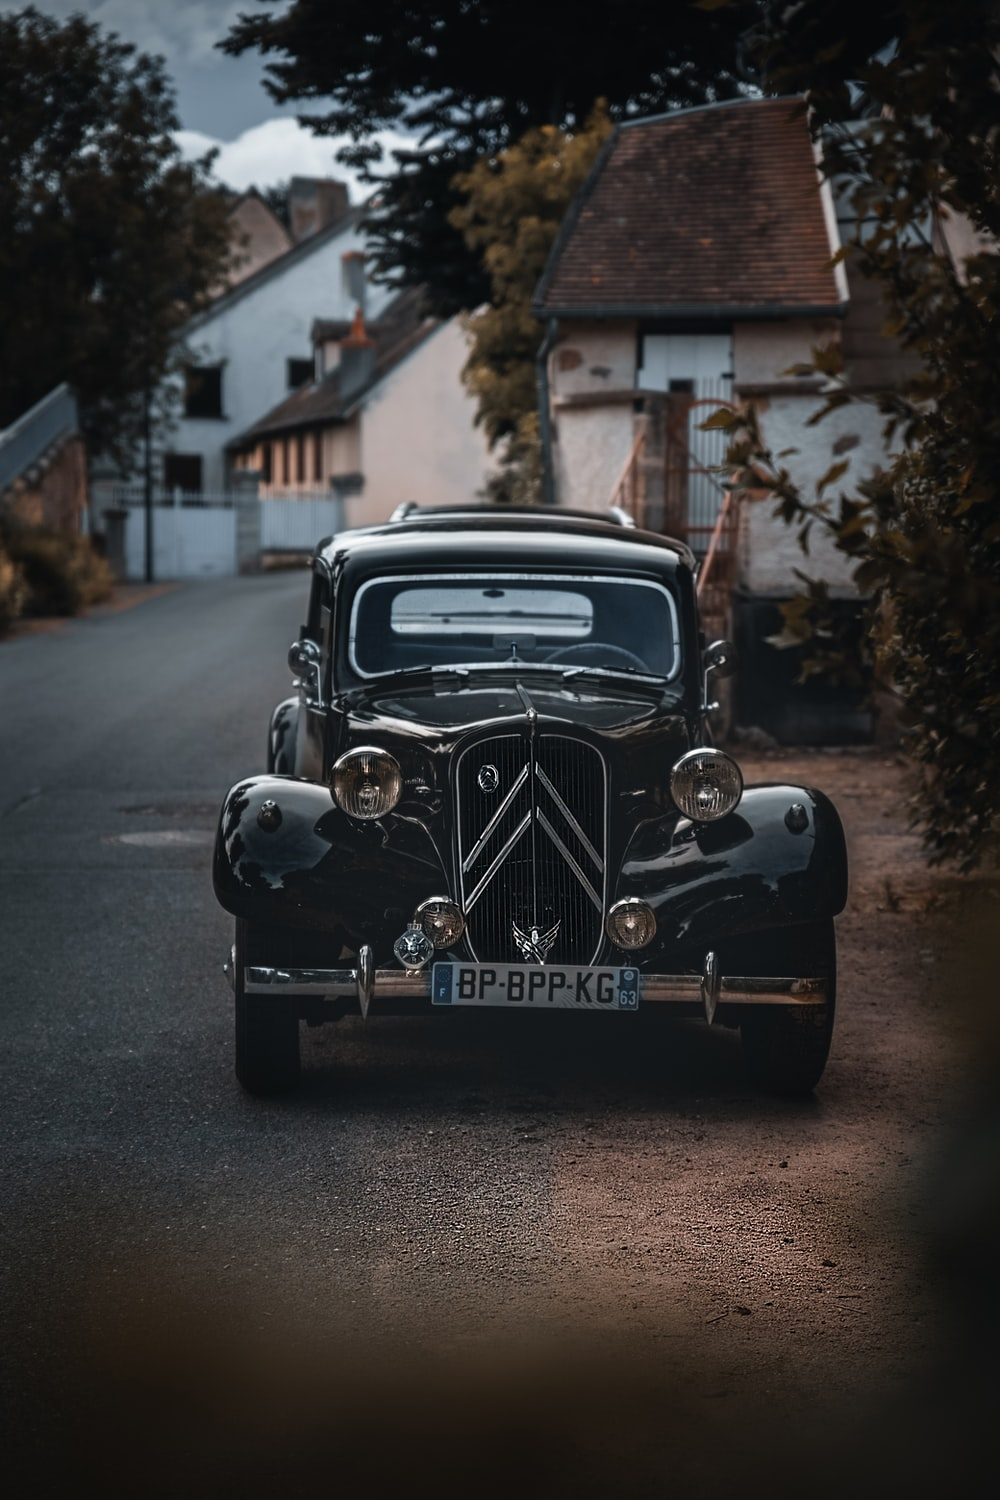 black vintage car parked on the side of the road during daytime